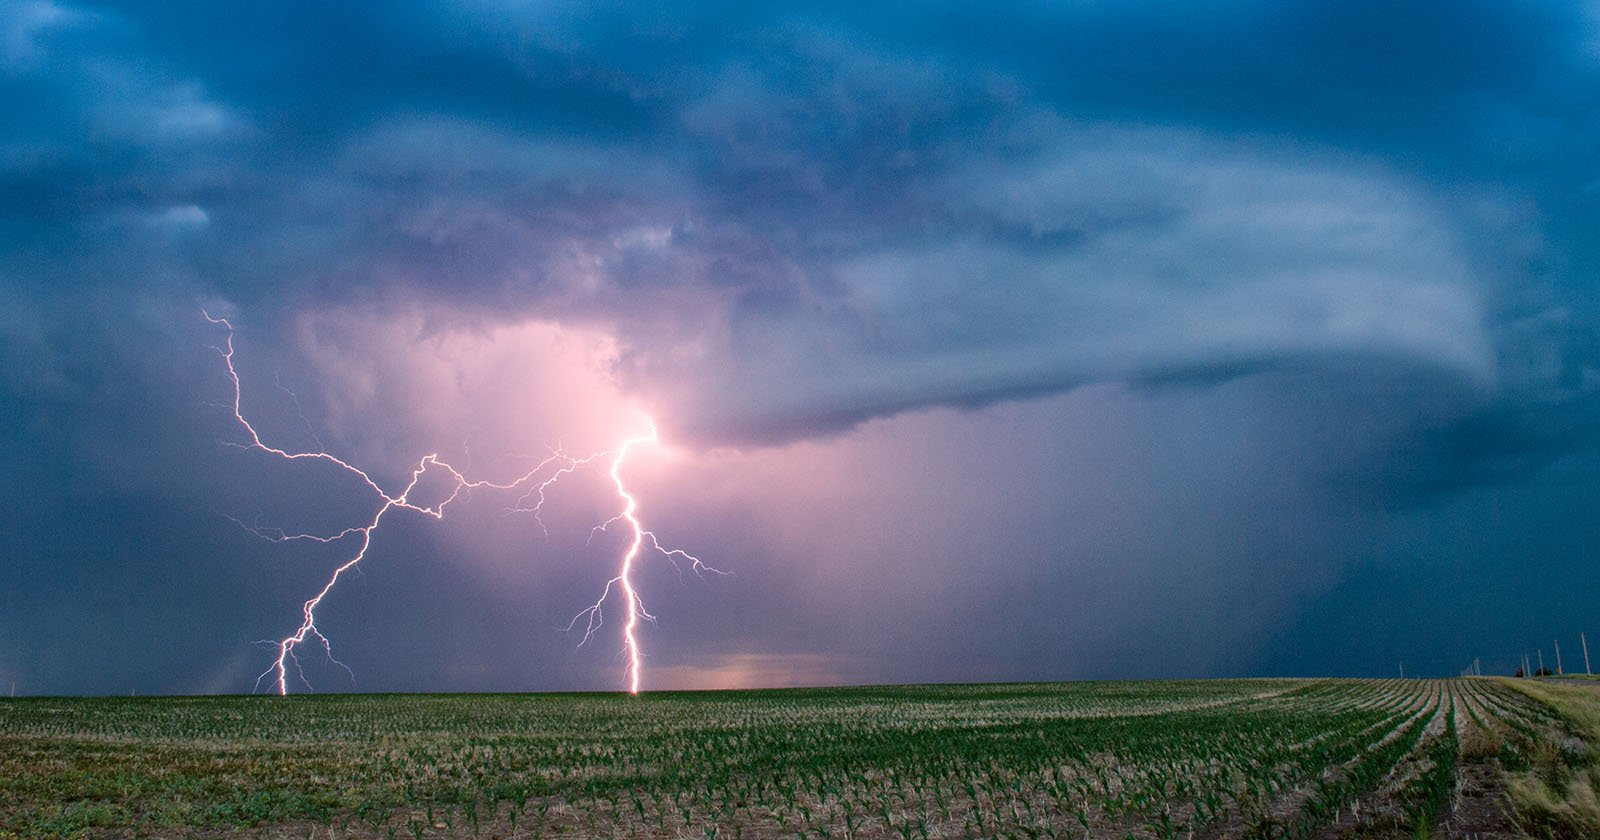 How to Photograph Lightning: Helpful Tips for Nailing the Shot